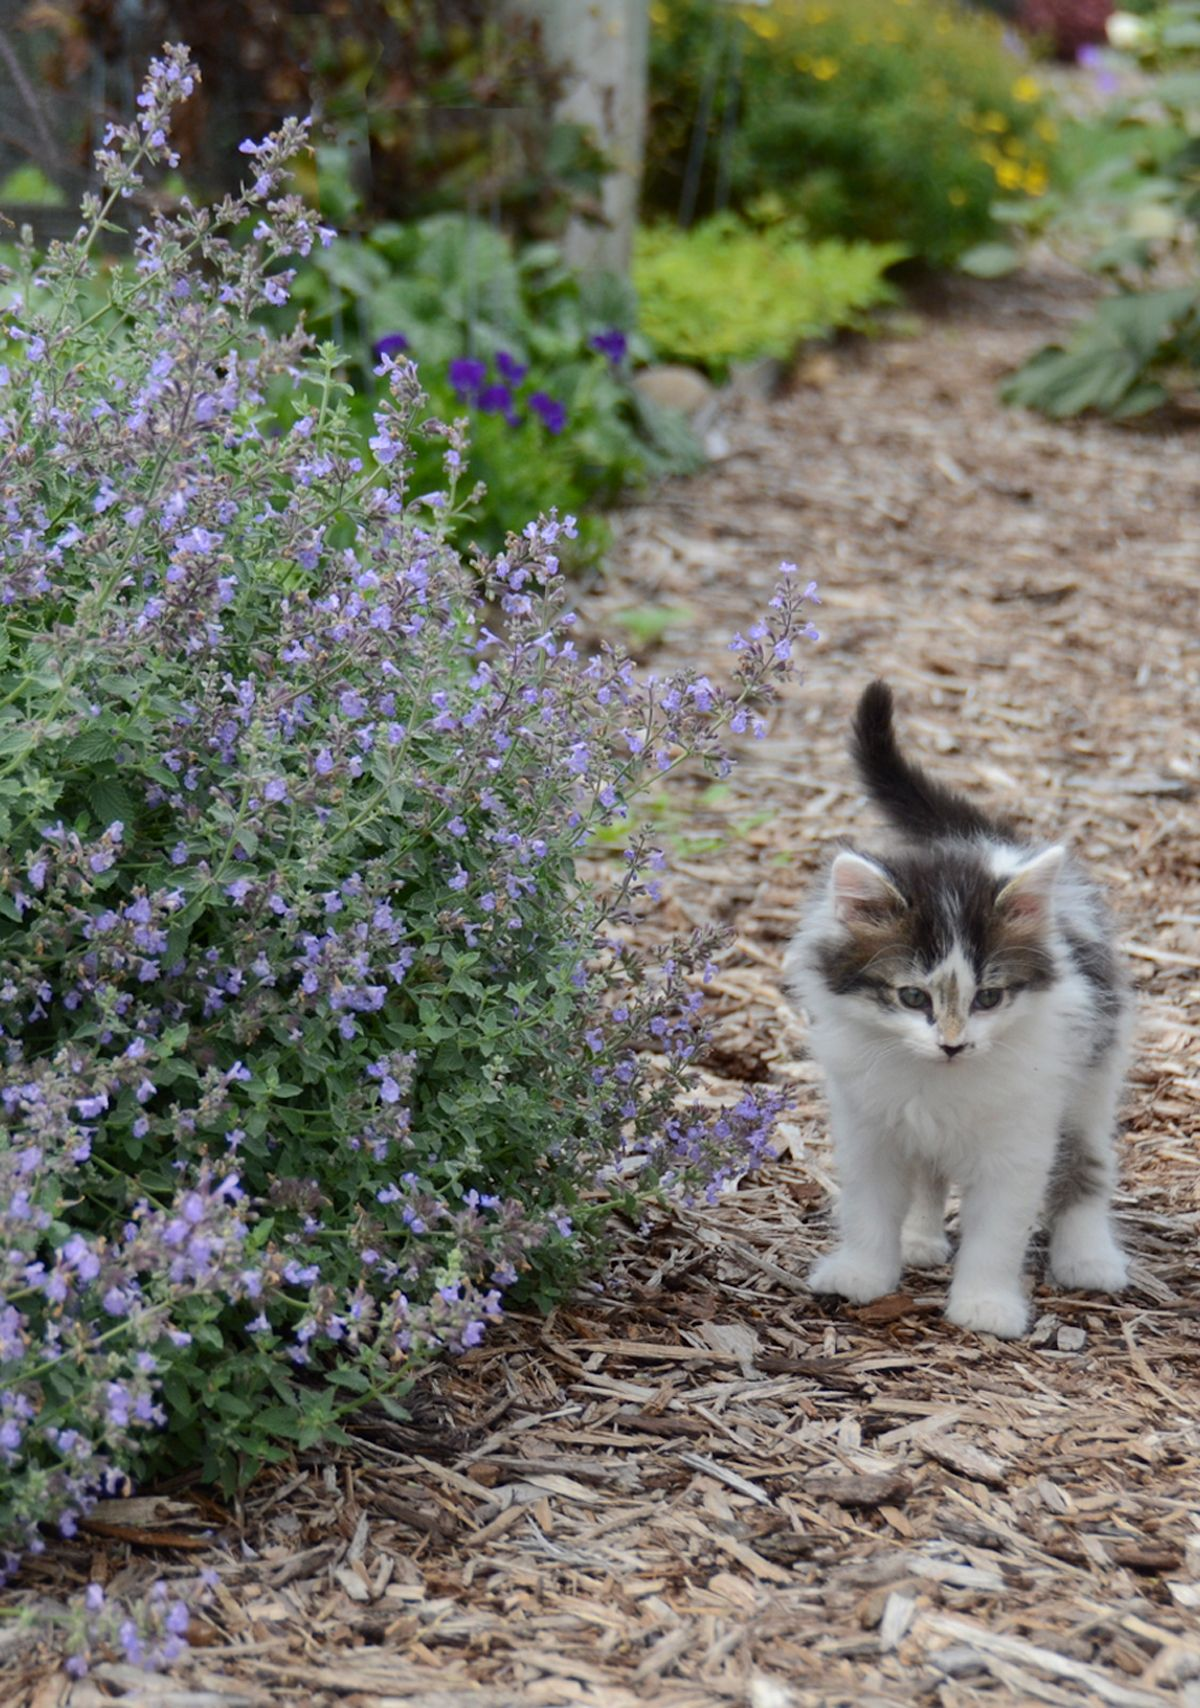 'Cat's Meow' Catmint Nepeta faassenii Drought